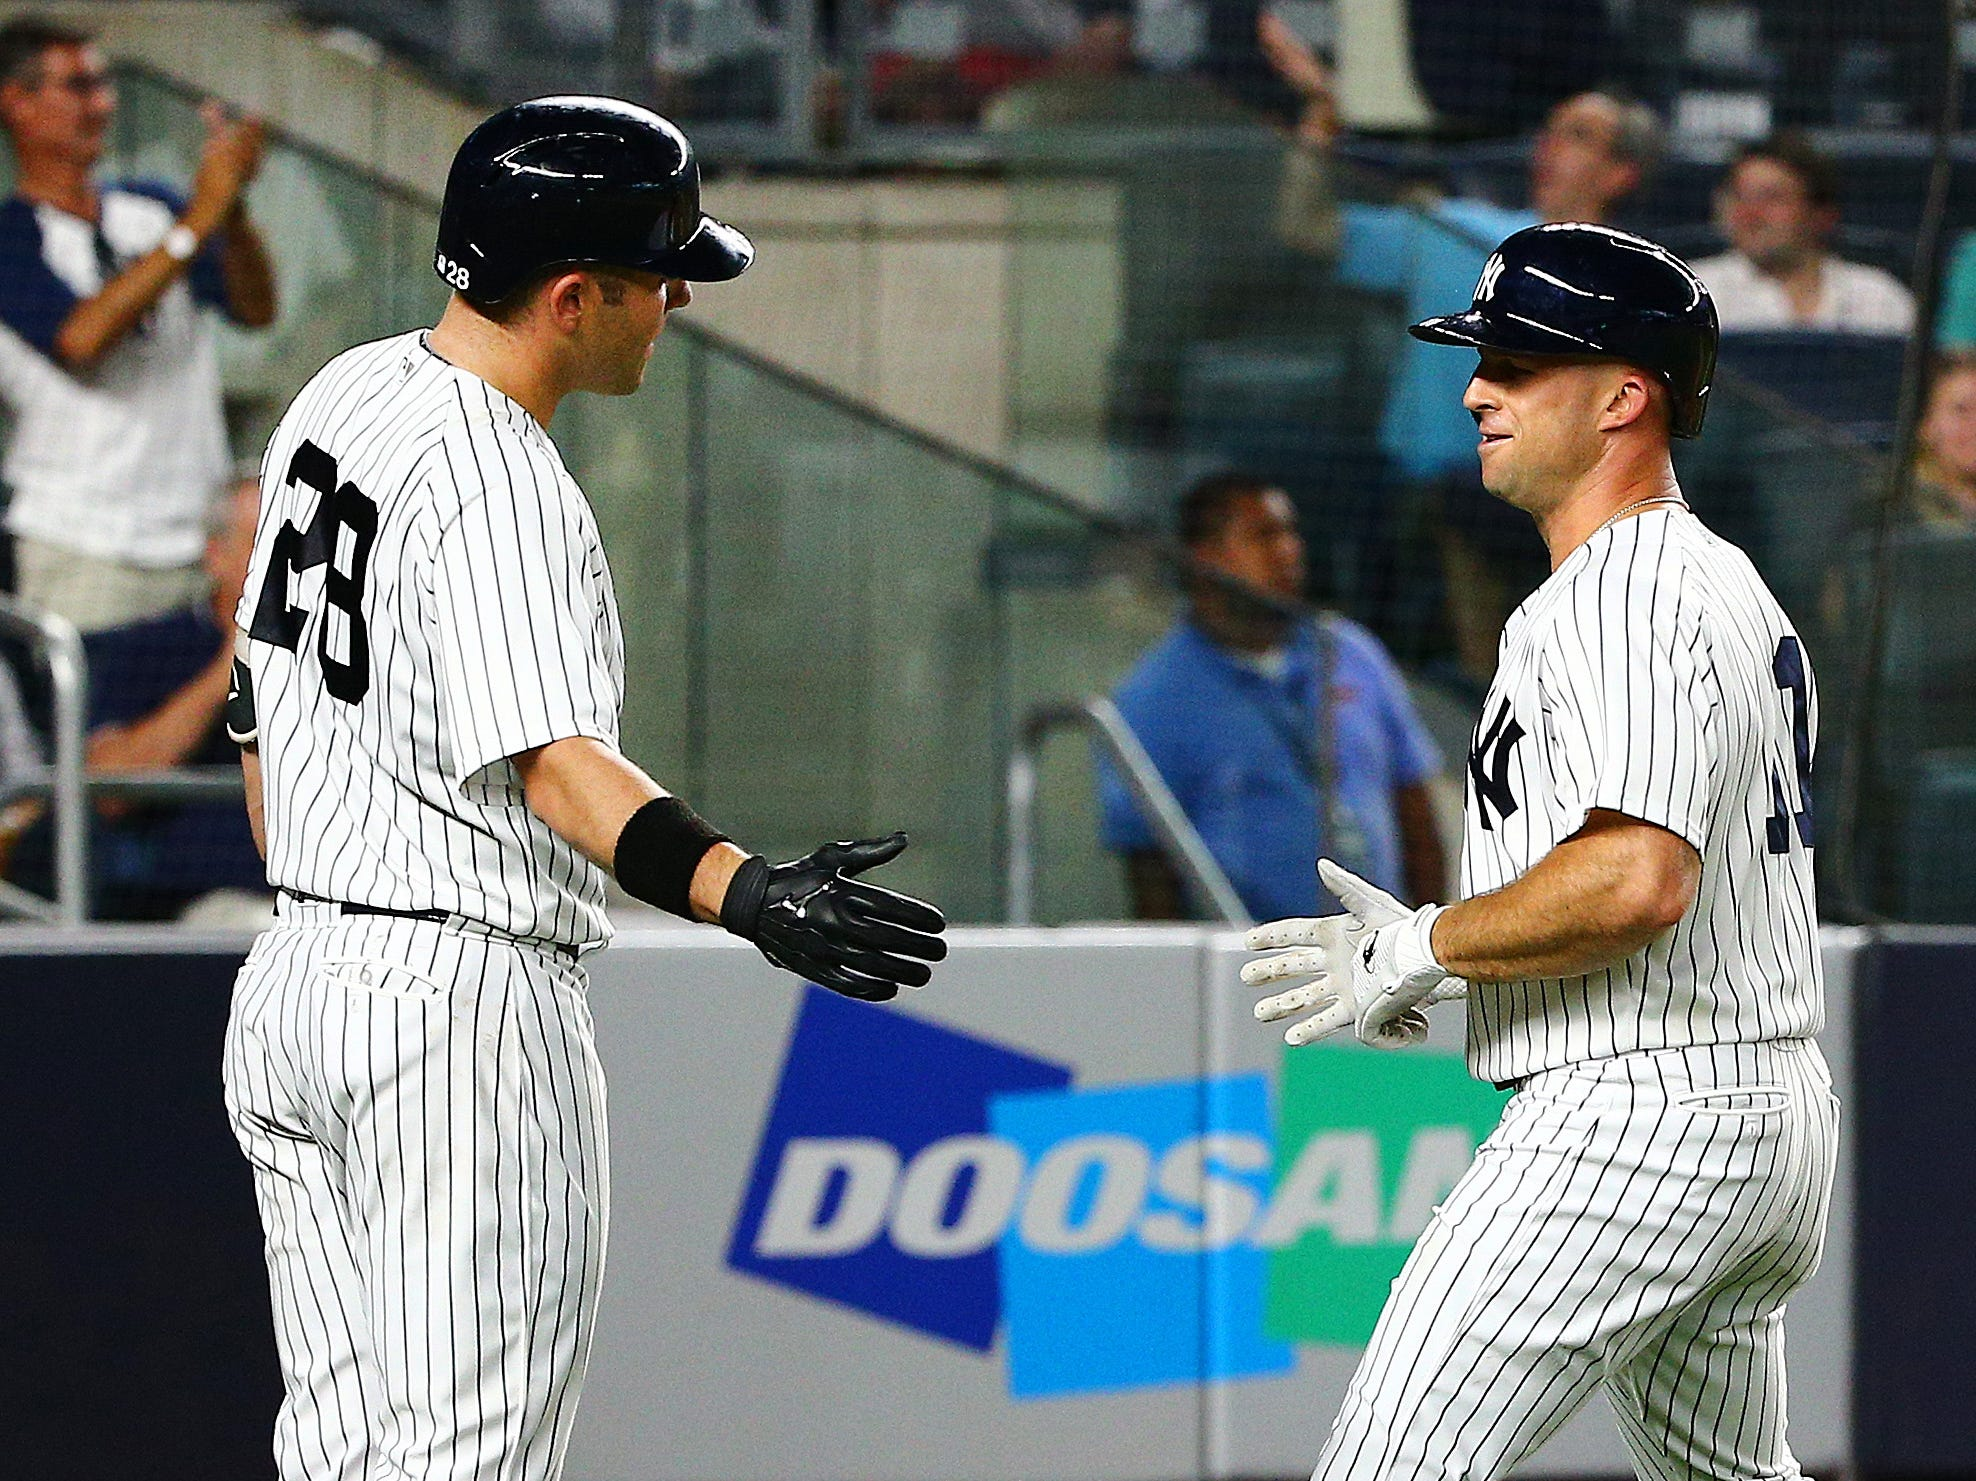 Yankees left fielder Brett Gardner (11) is congratulated by catcher Austin Romine (28) after hitting a solo home run against the Texas Rangers during the fifth inning at Yankee Stadium.